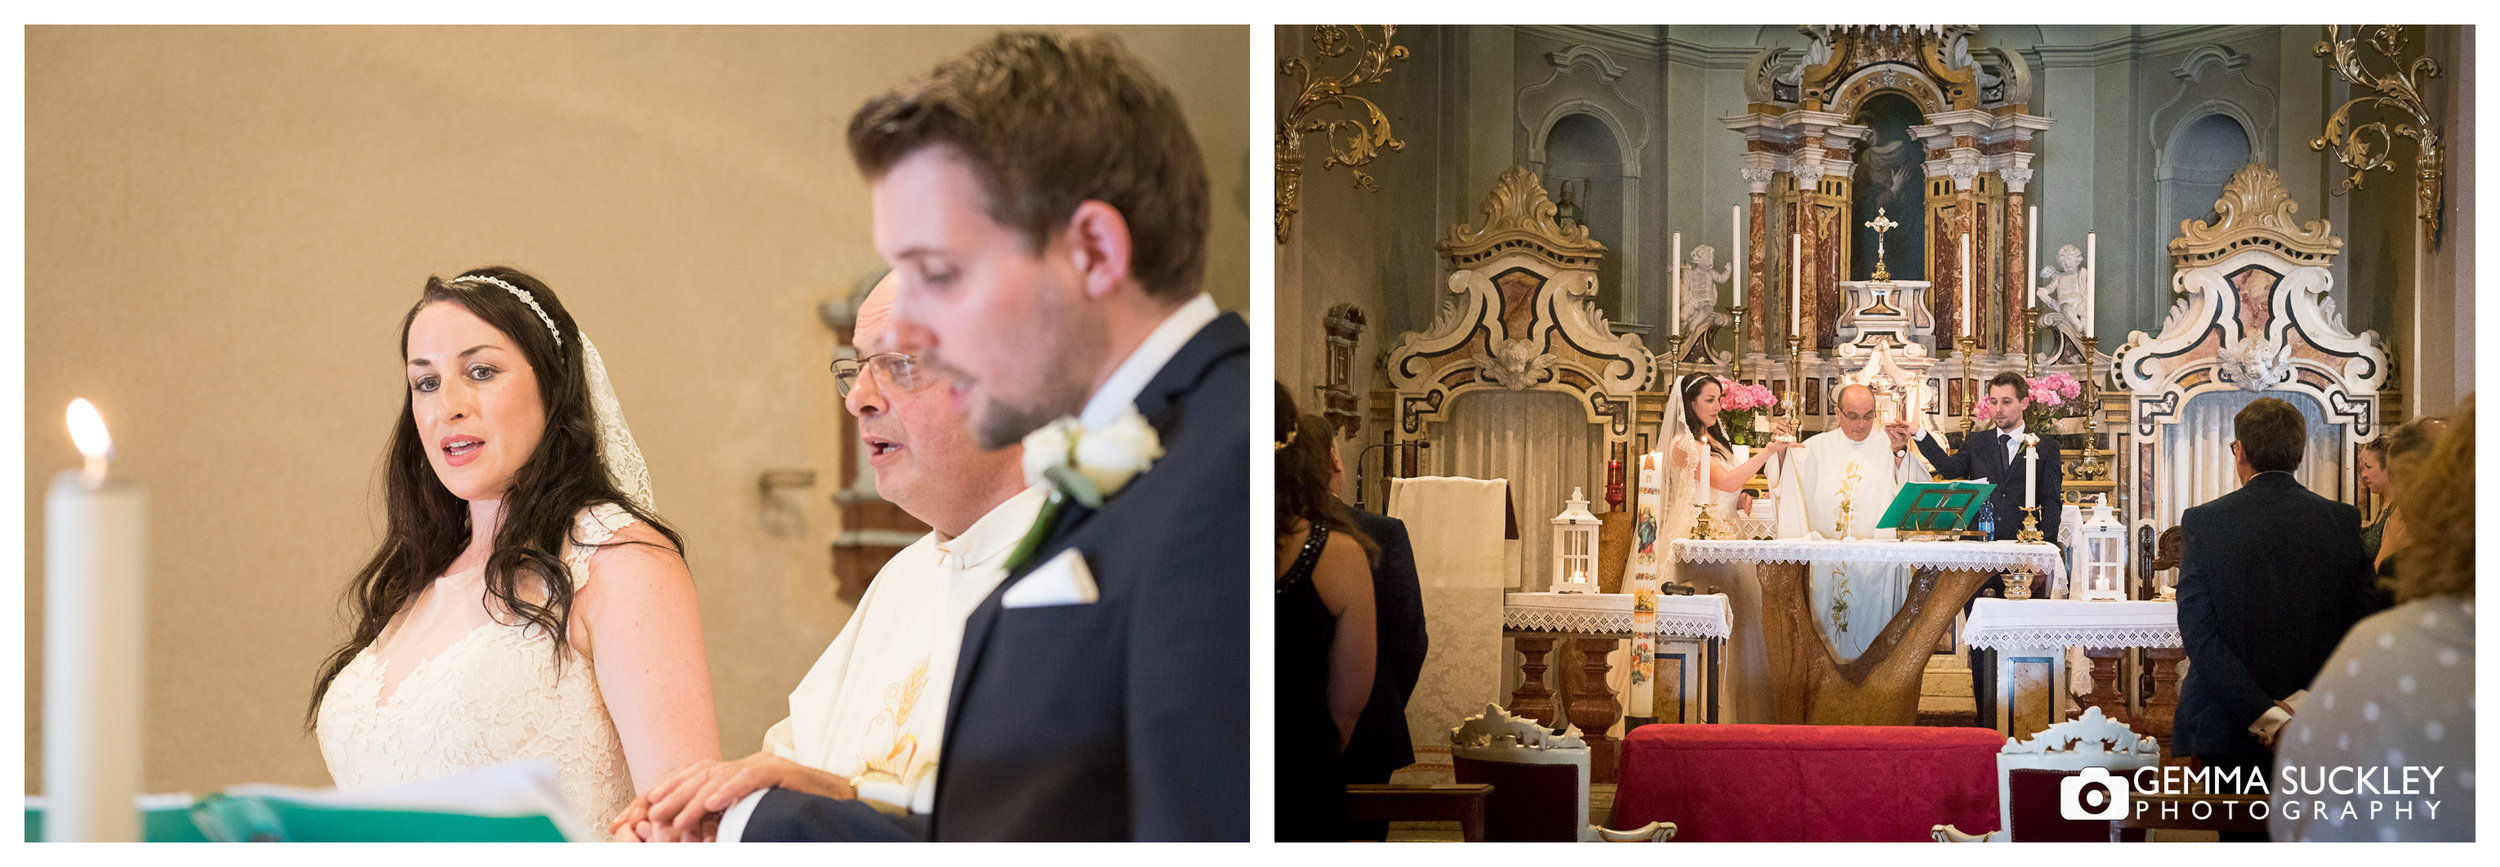 Yorkshire bride and groom at the alter in Italian church